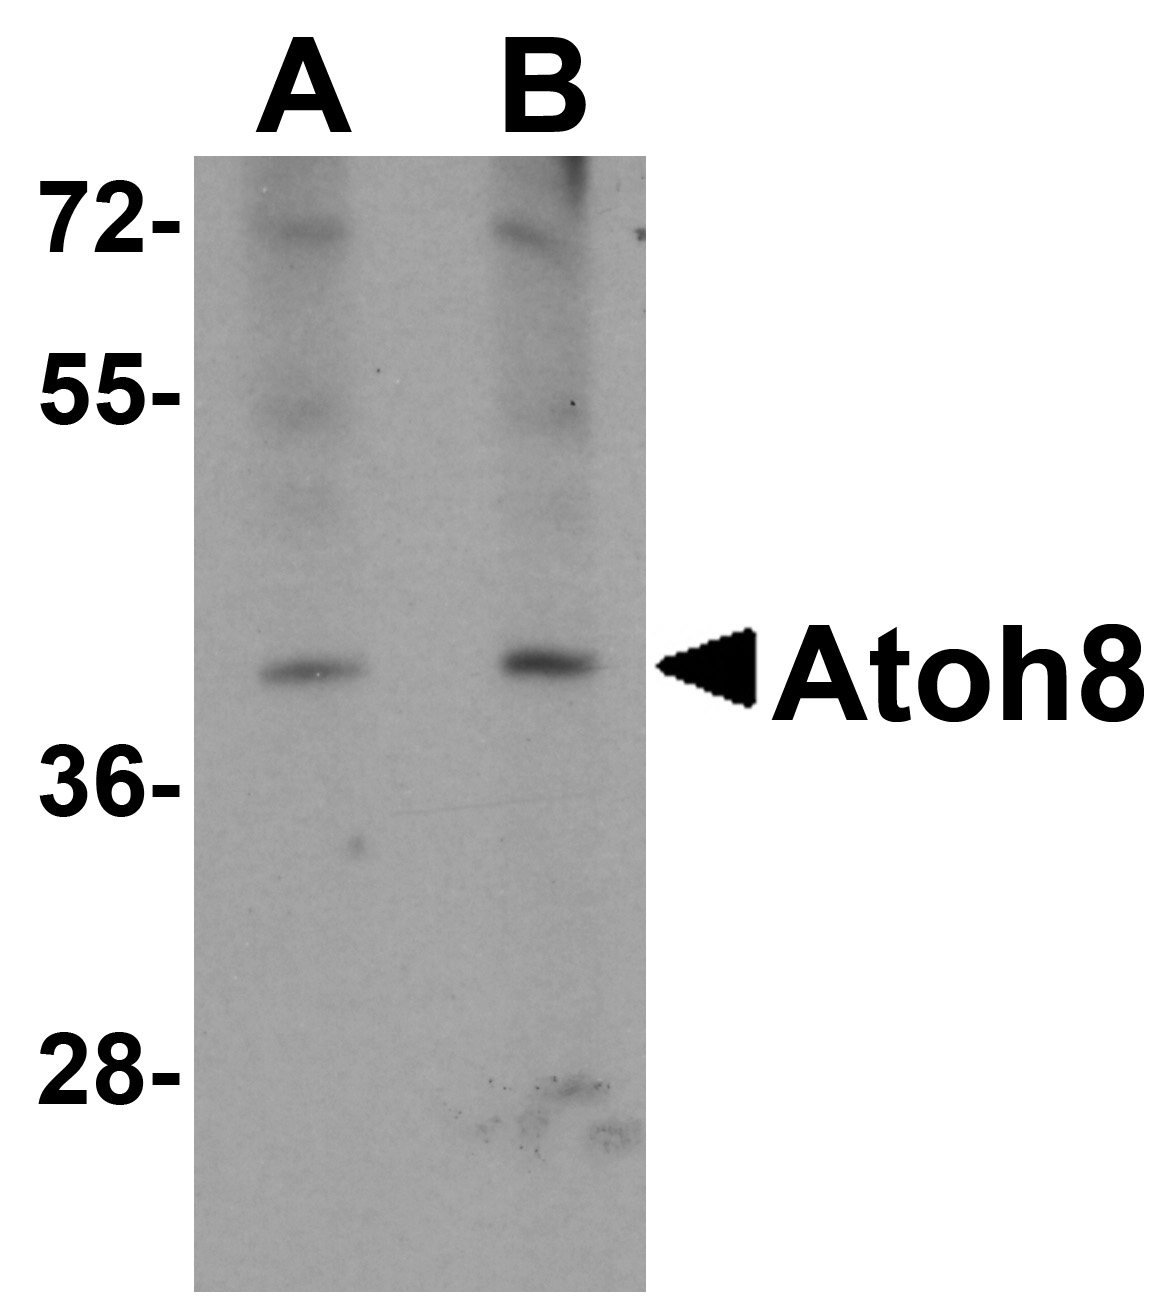 ATOH8 Antibody (OAPB00860) in A-20 cells using Western Blot